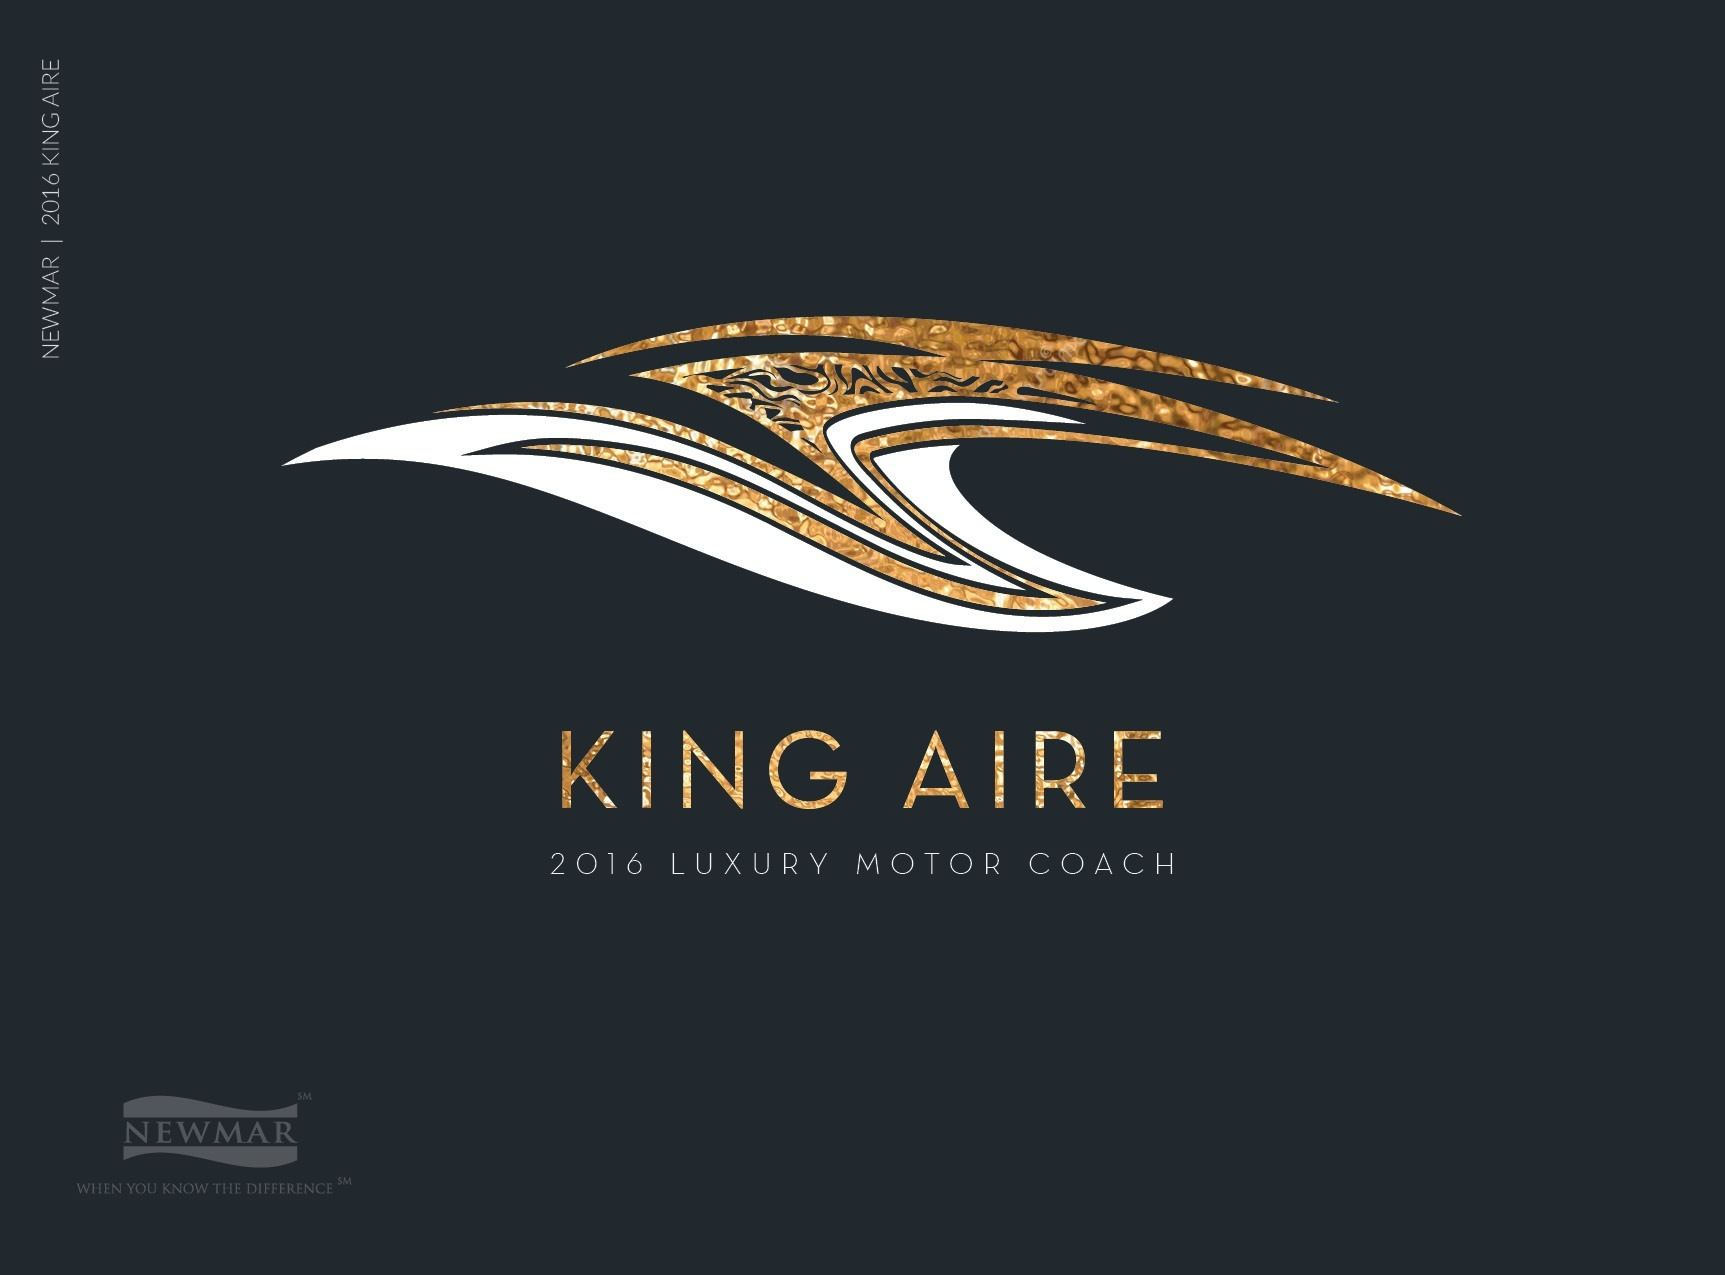 2016 King Aire